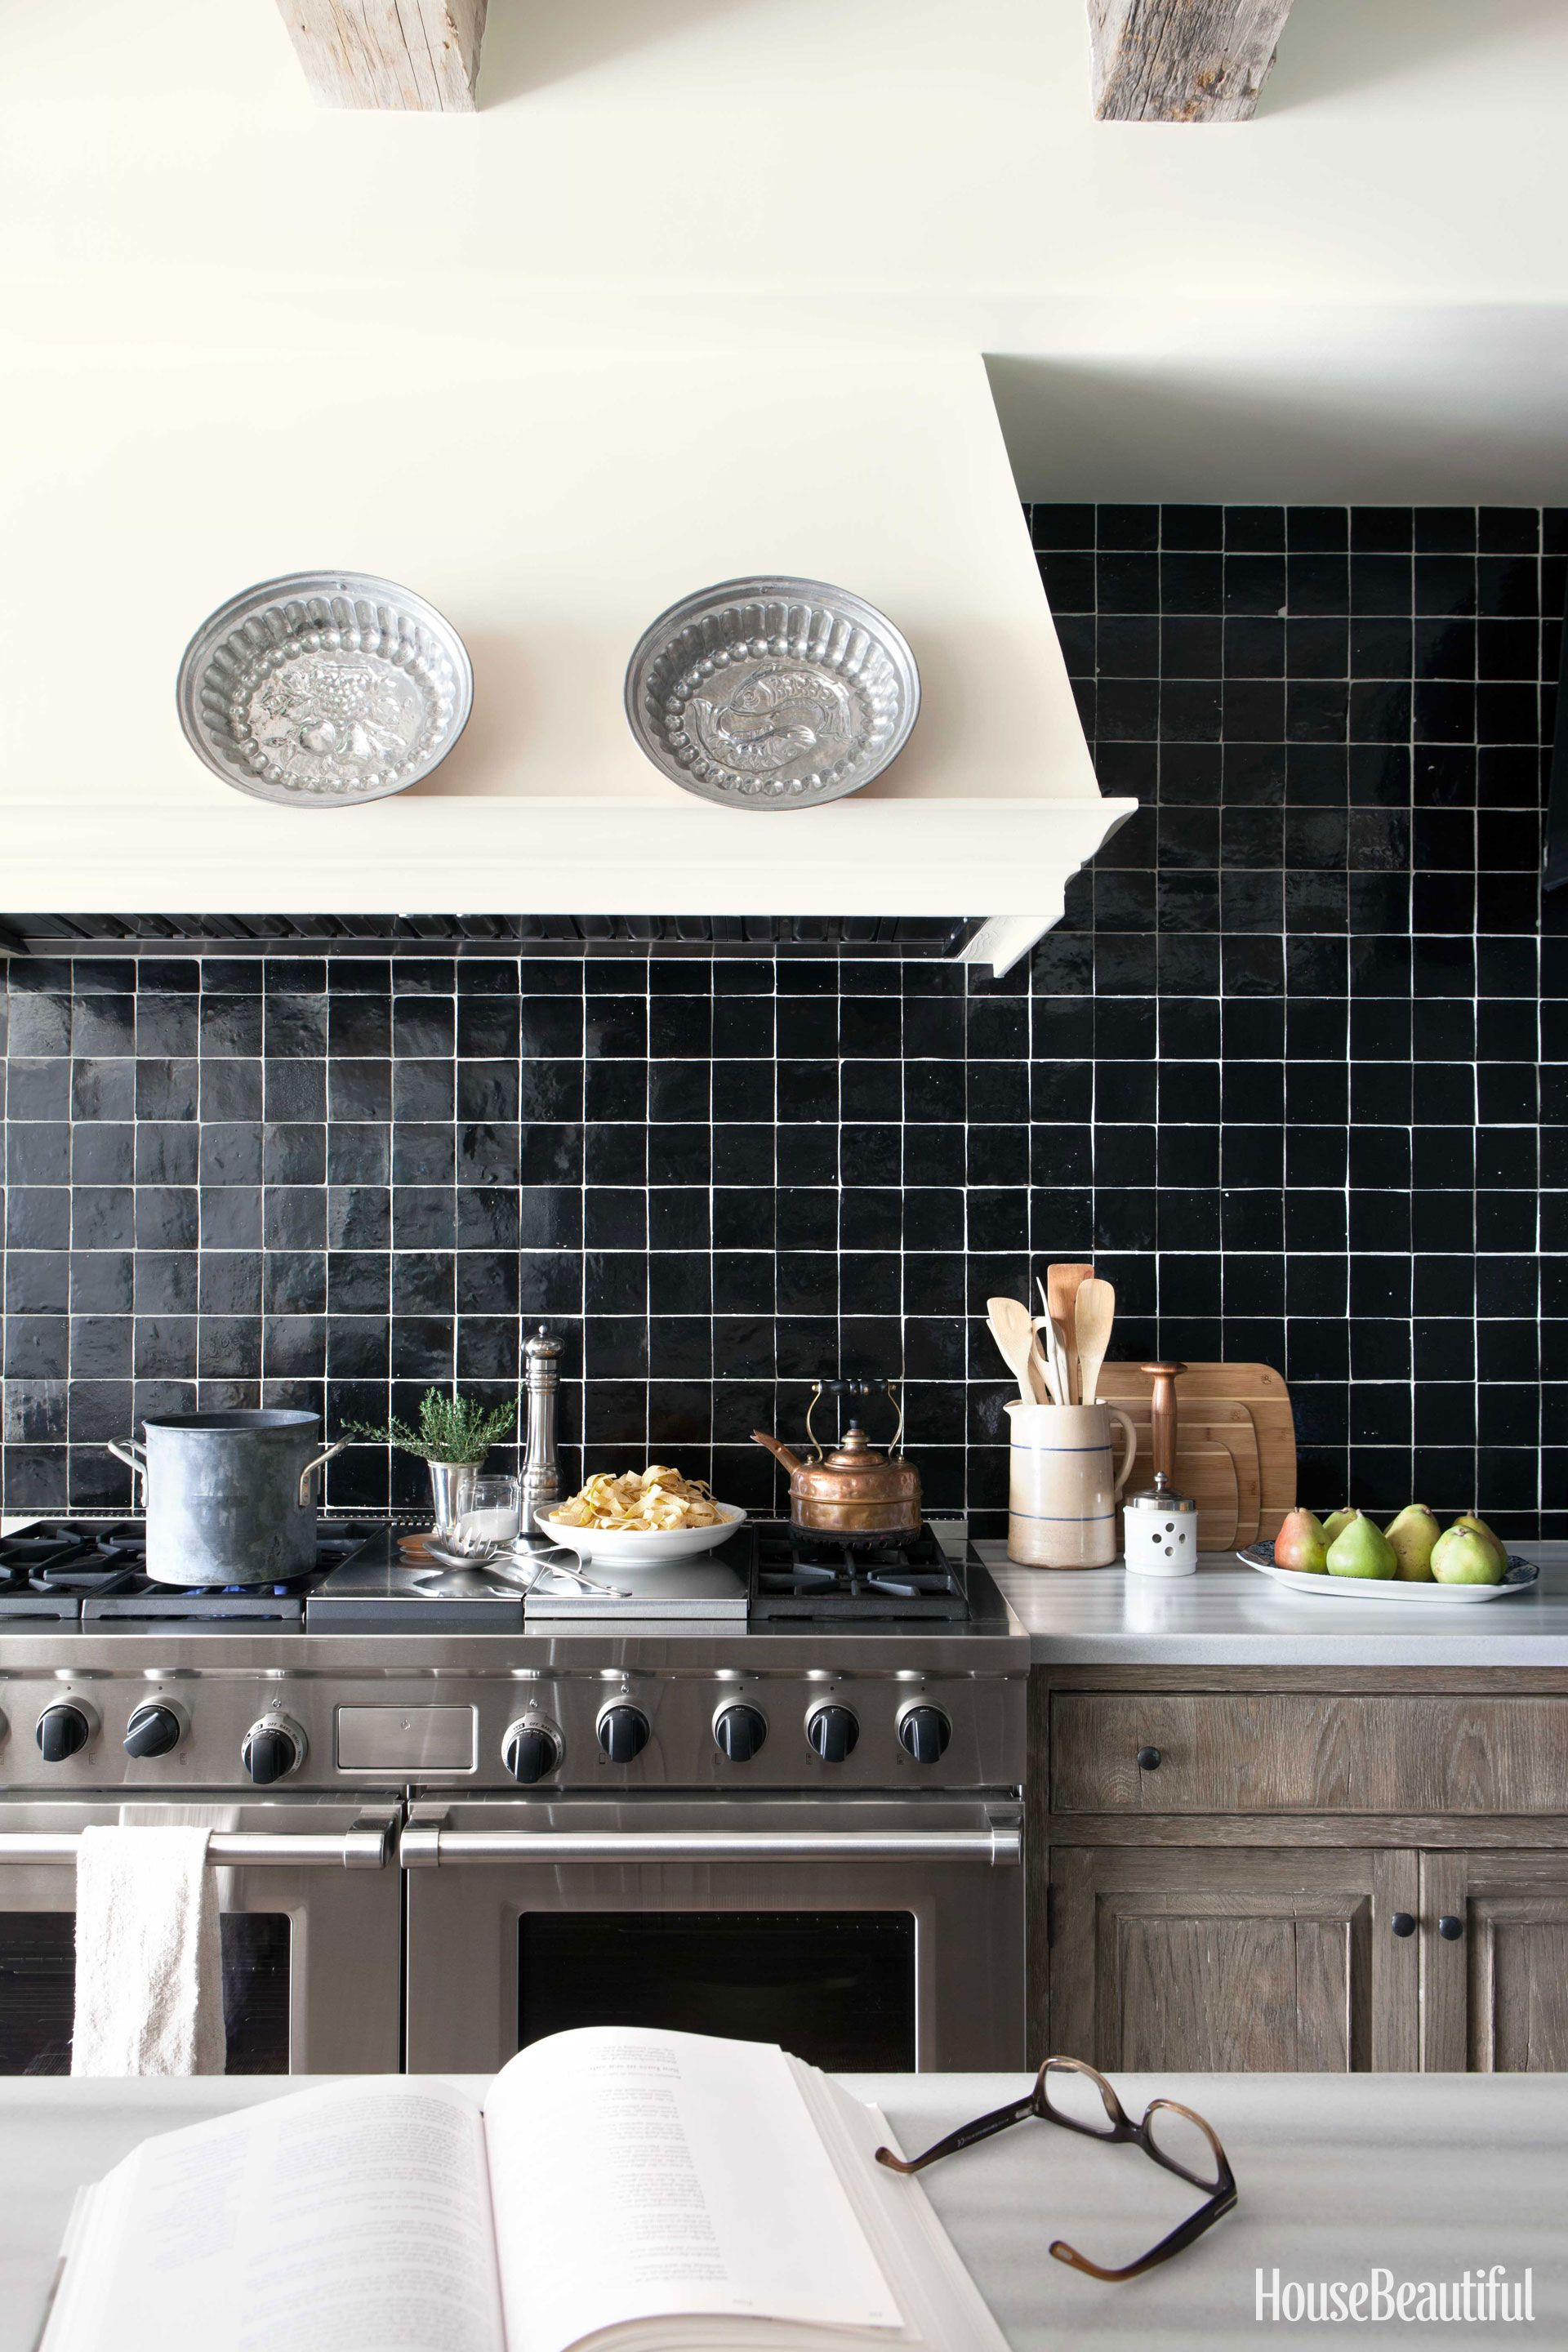 Best kitchen backsplash ideas tile designs for kitchen backsplashes dailygadgetfo Choice Image